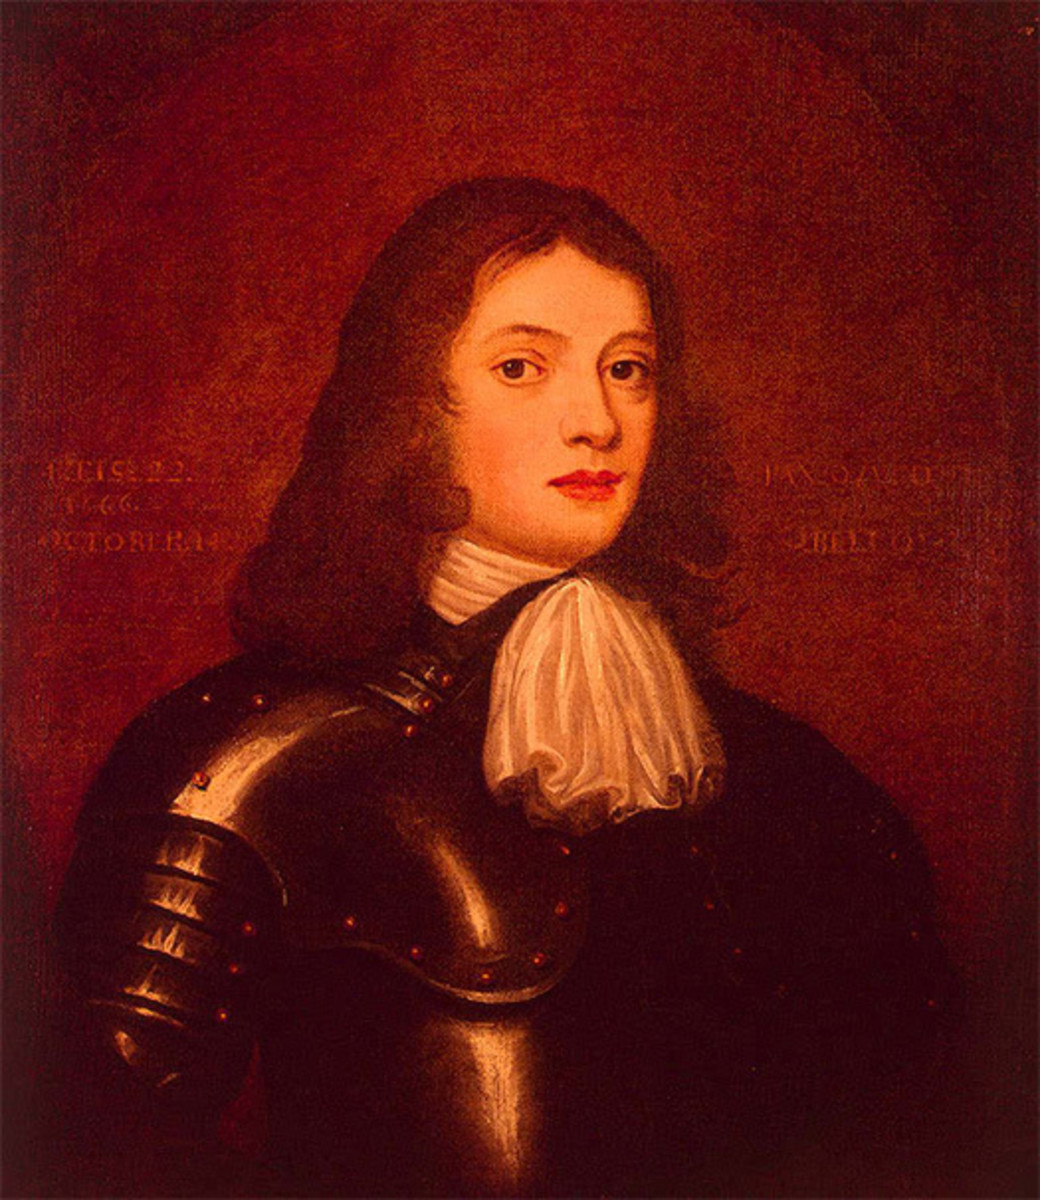 William Penn at age 22 in 1666. Oil on canvas, eighteenth-century copy of a seventeenth-century portrait, possibly by Sir Peter Lely.